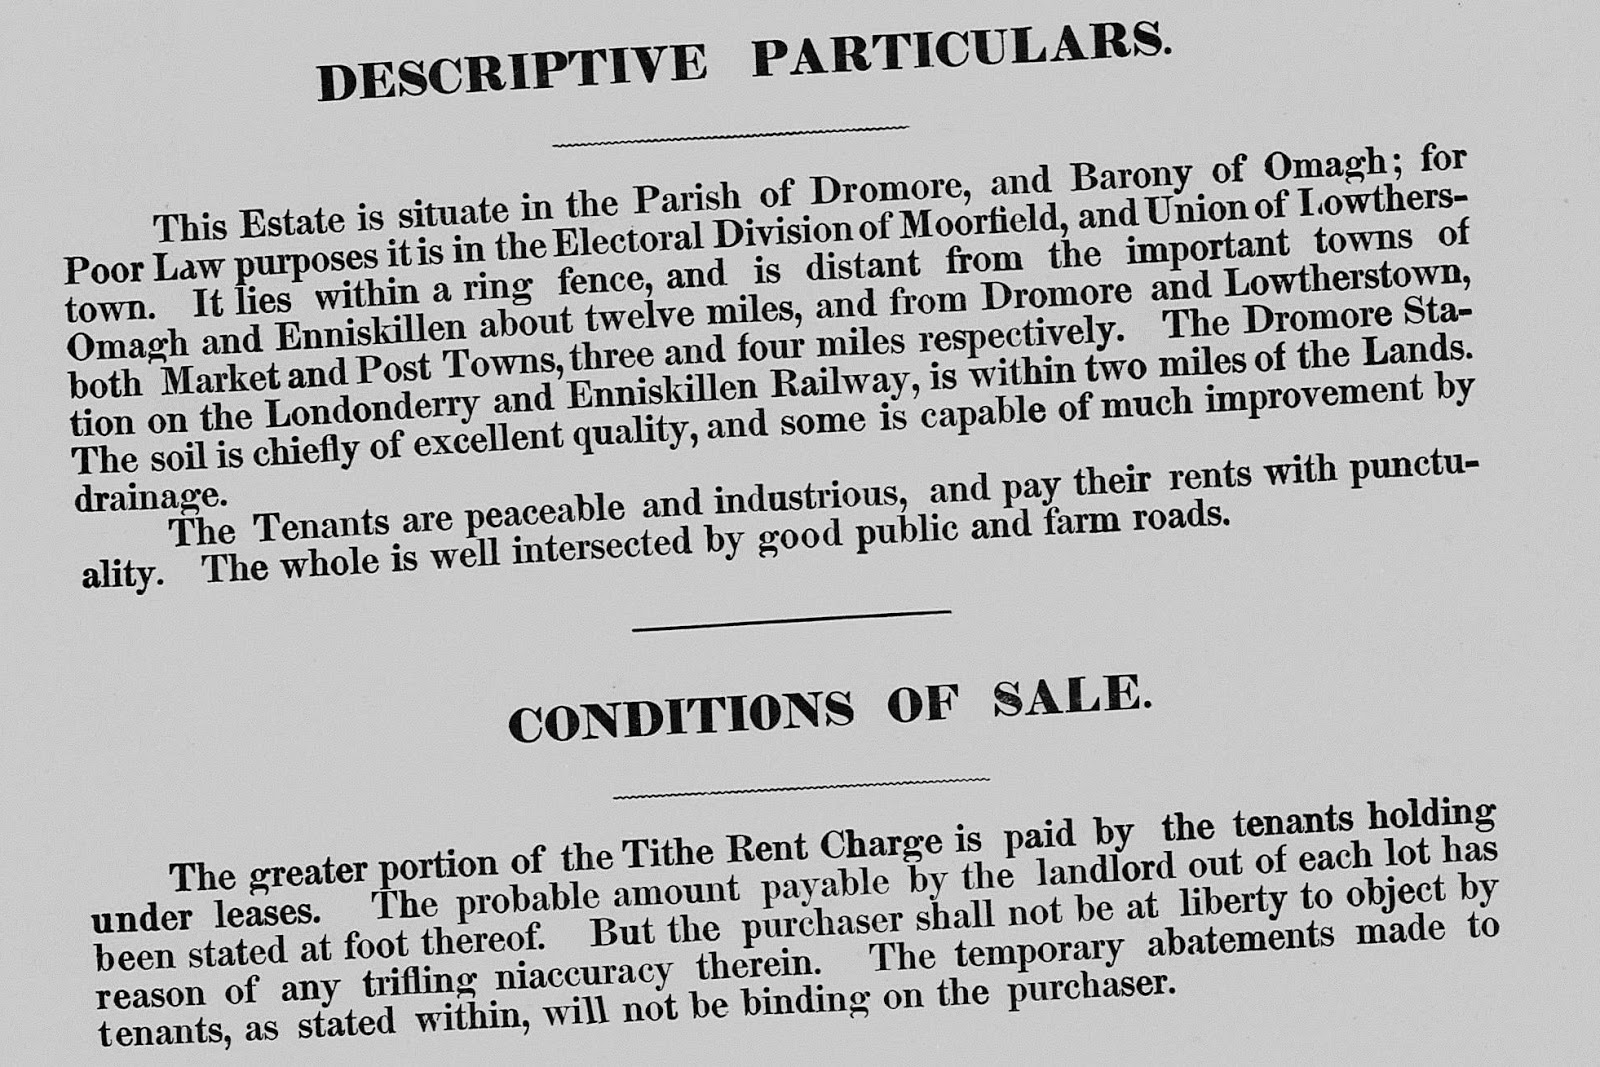 there are 16 pages to the tummery encumbered estates sales package including maps showing the placement of each lot leased in 1805 by comparing these maps